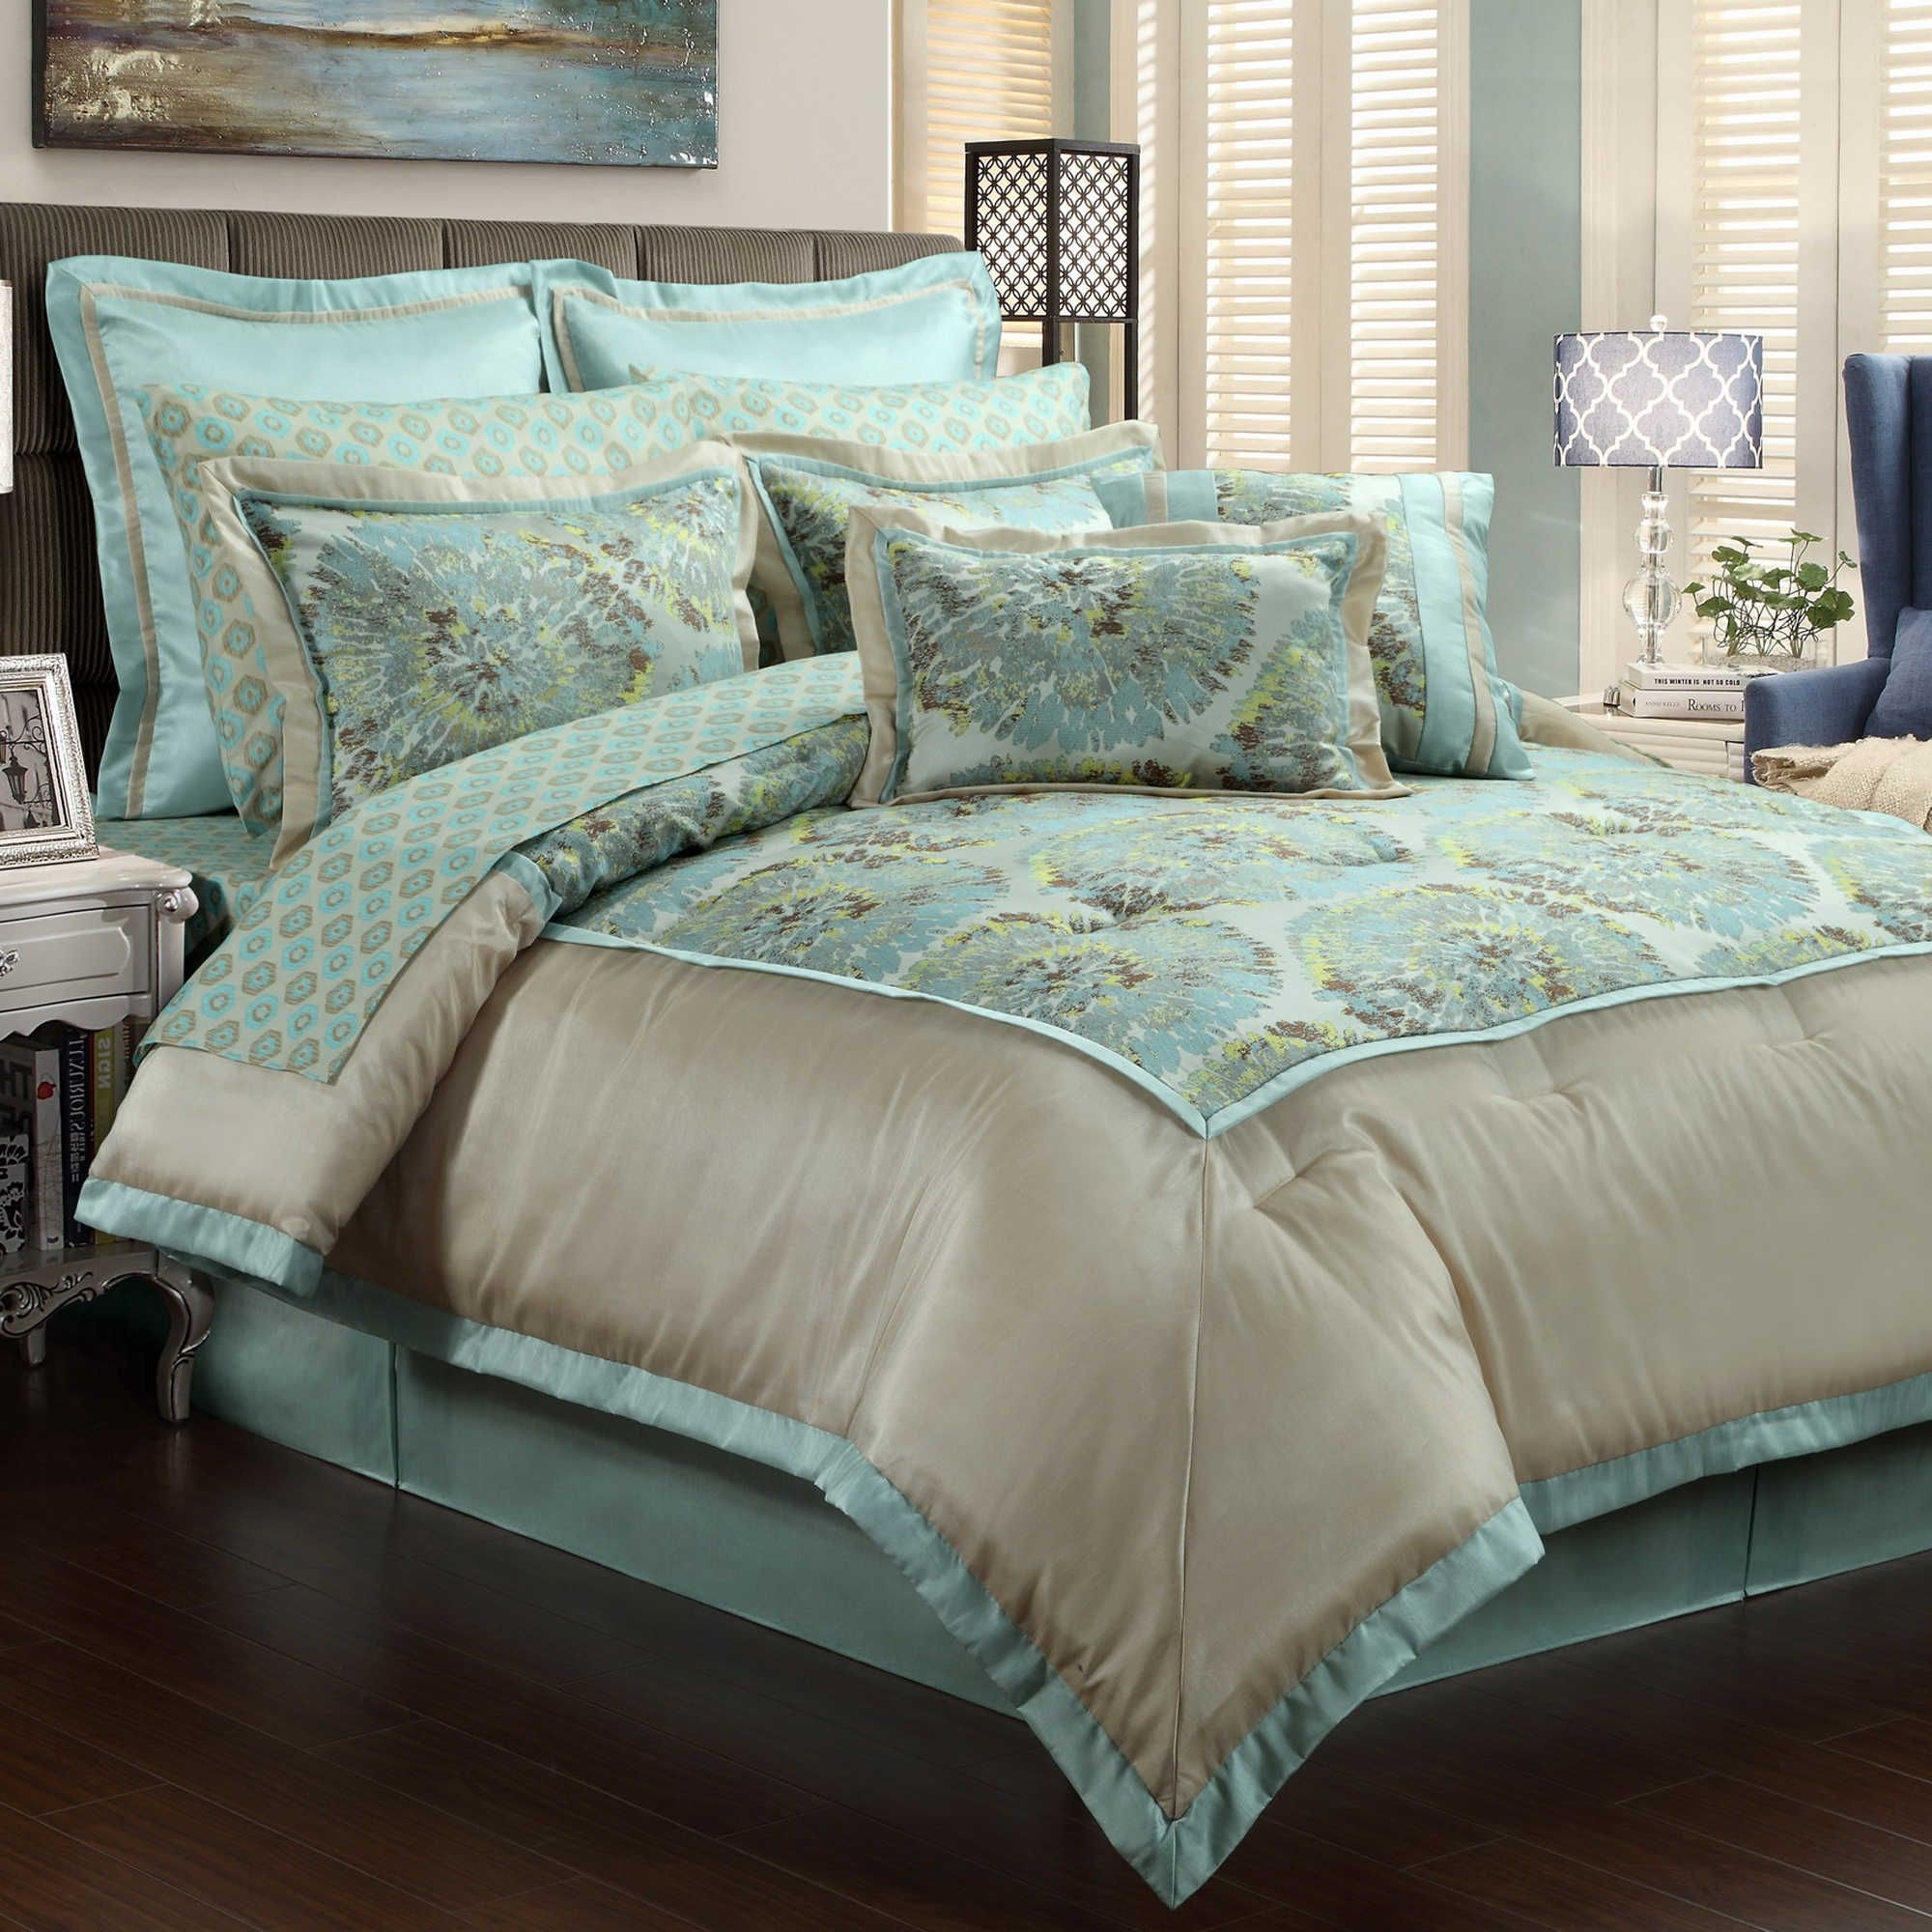 Queen new york luxembourg comforter set in antique silver bed - Bed Bath Beyond Metropolitan Comforter Set Shopstyle